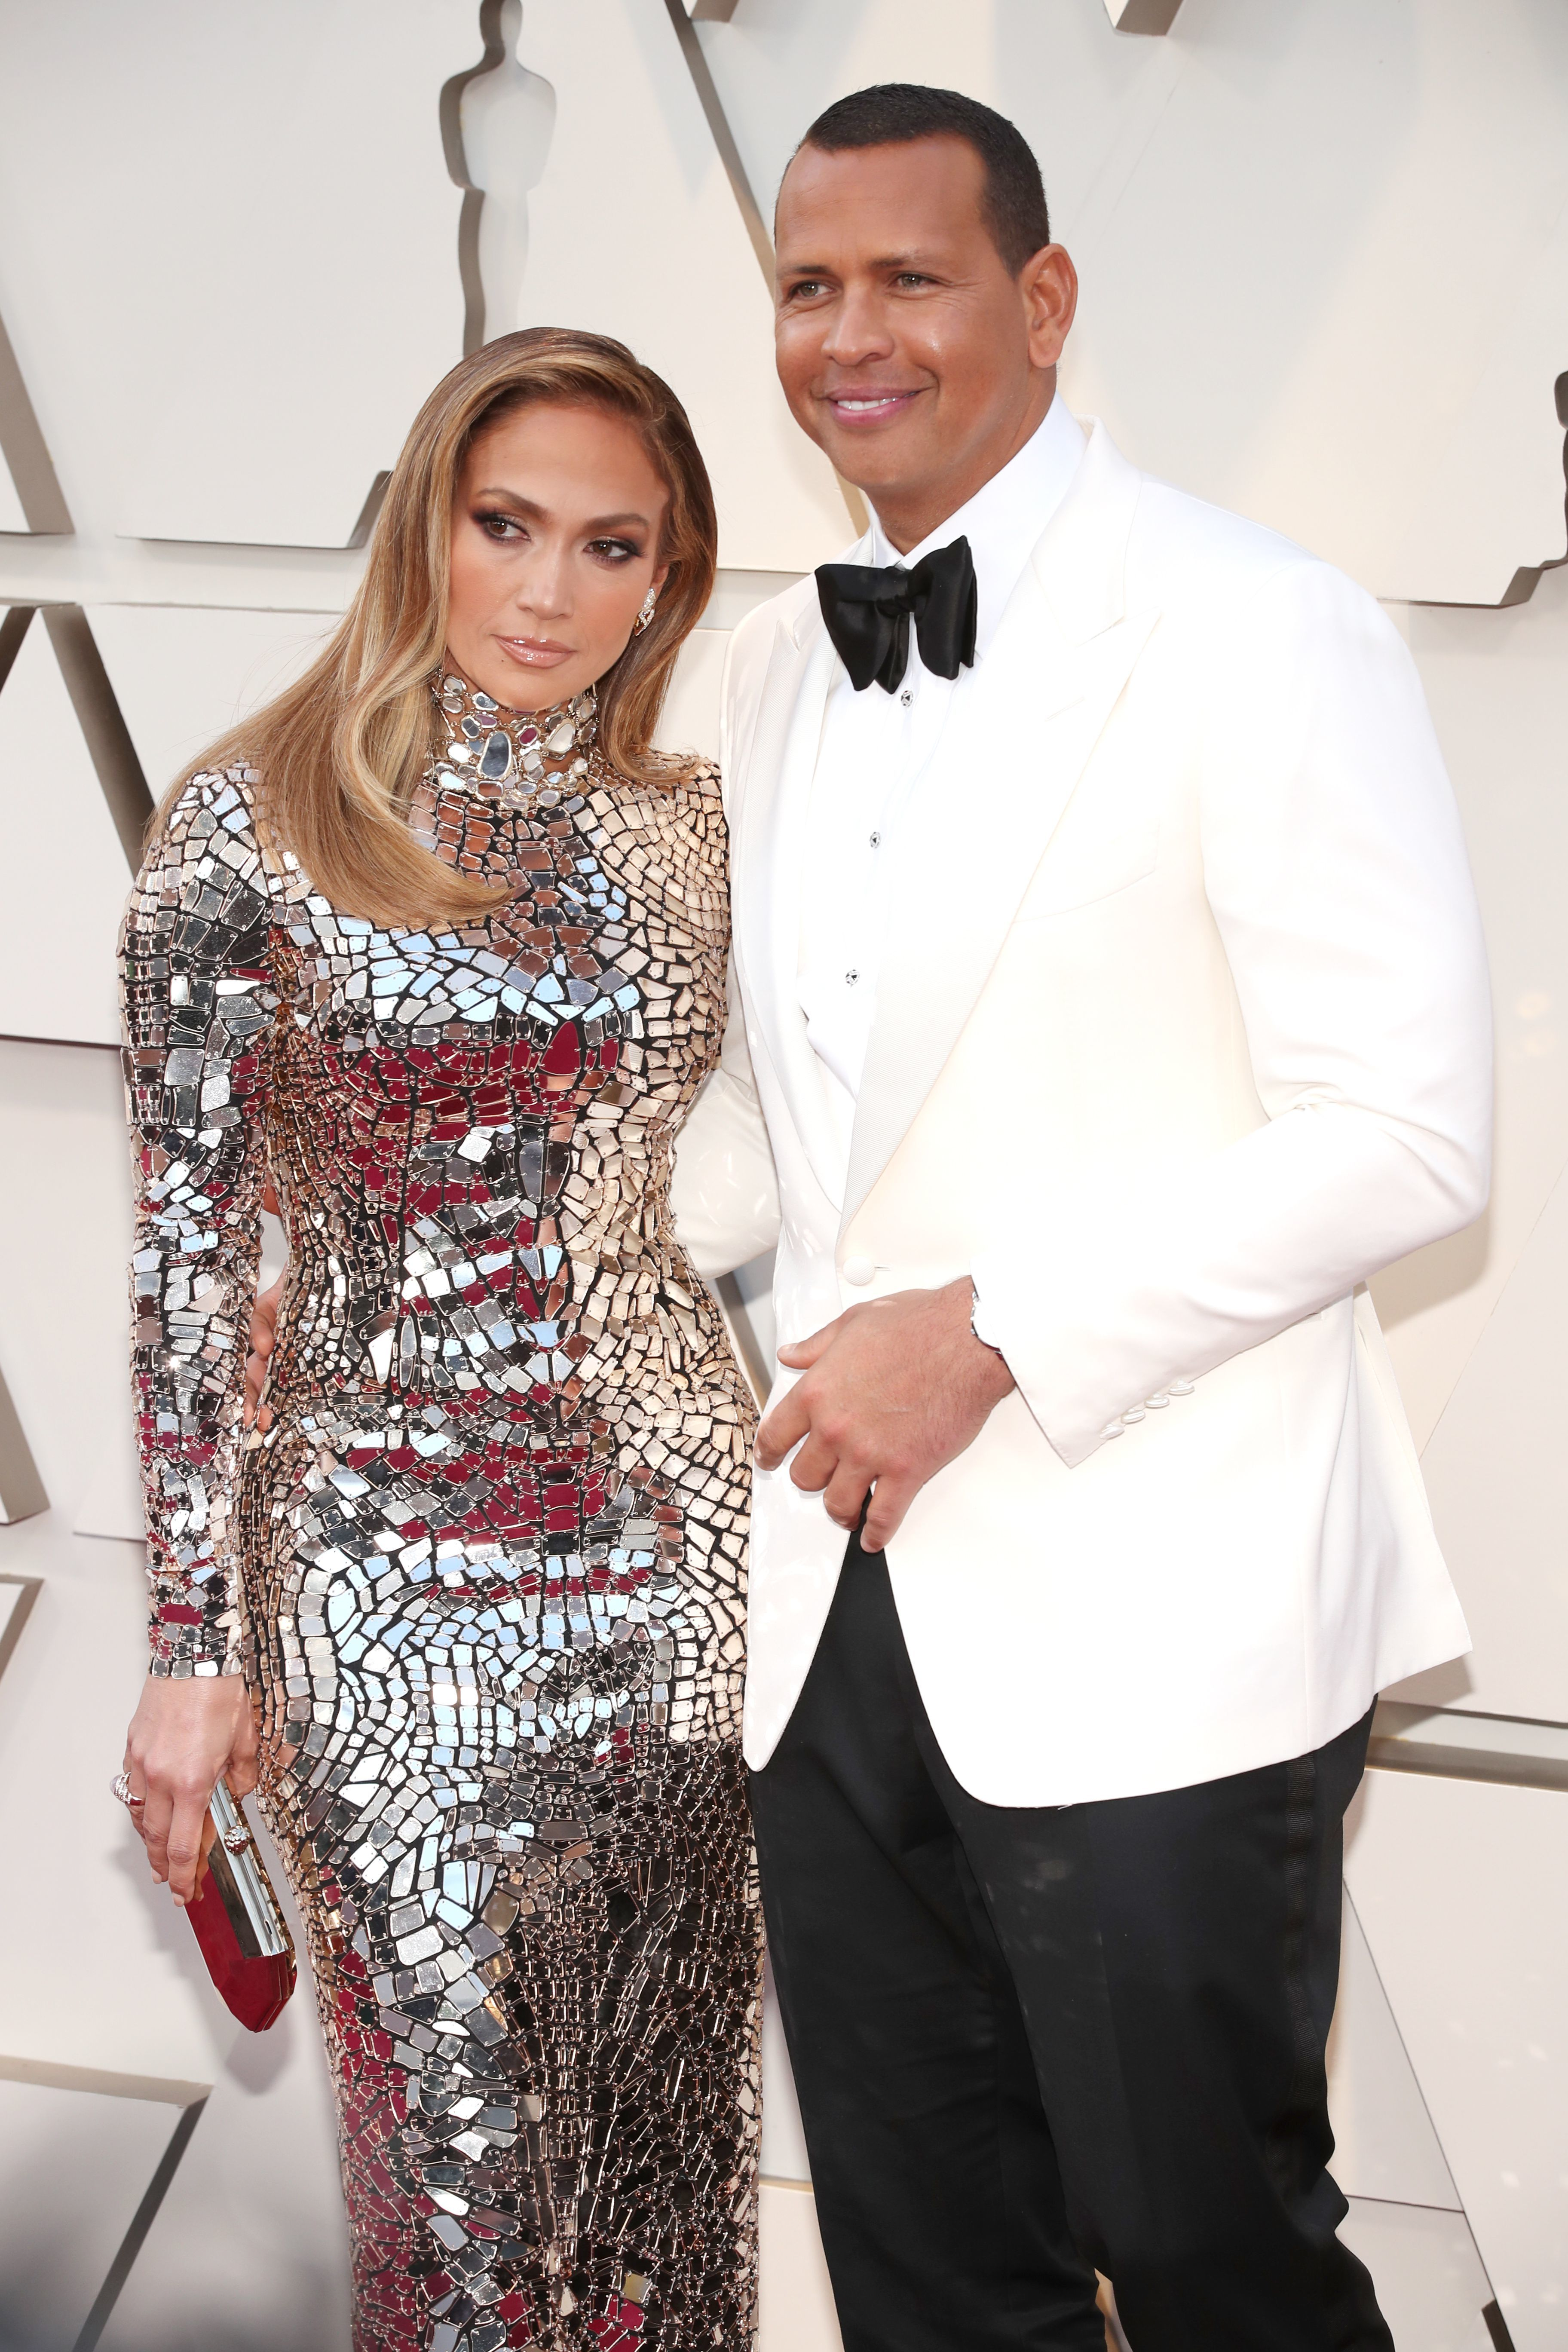 Ne Yo says Jennifer Lopez is 'the happiest I've seen her' since getting engaged to A Rod